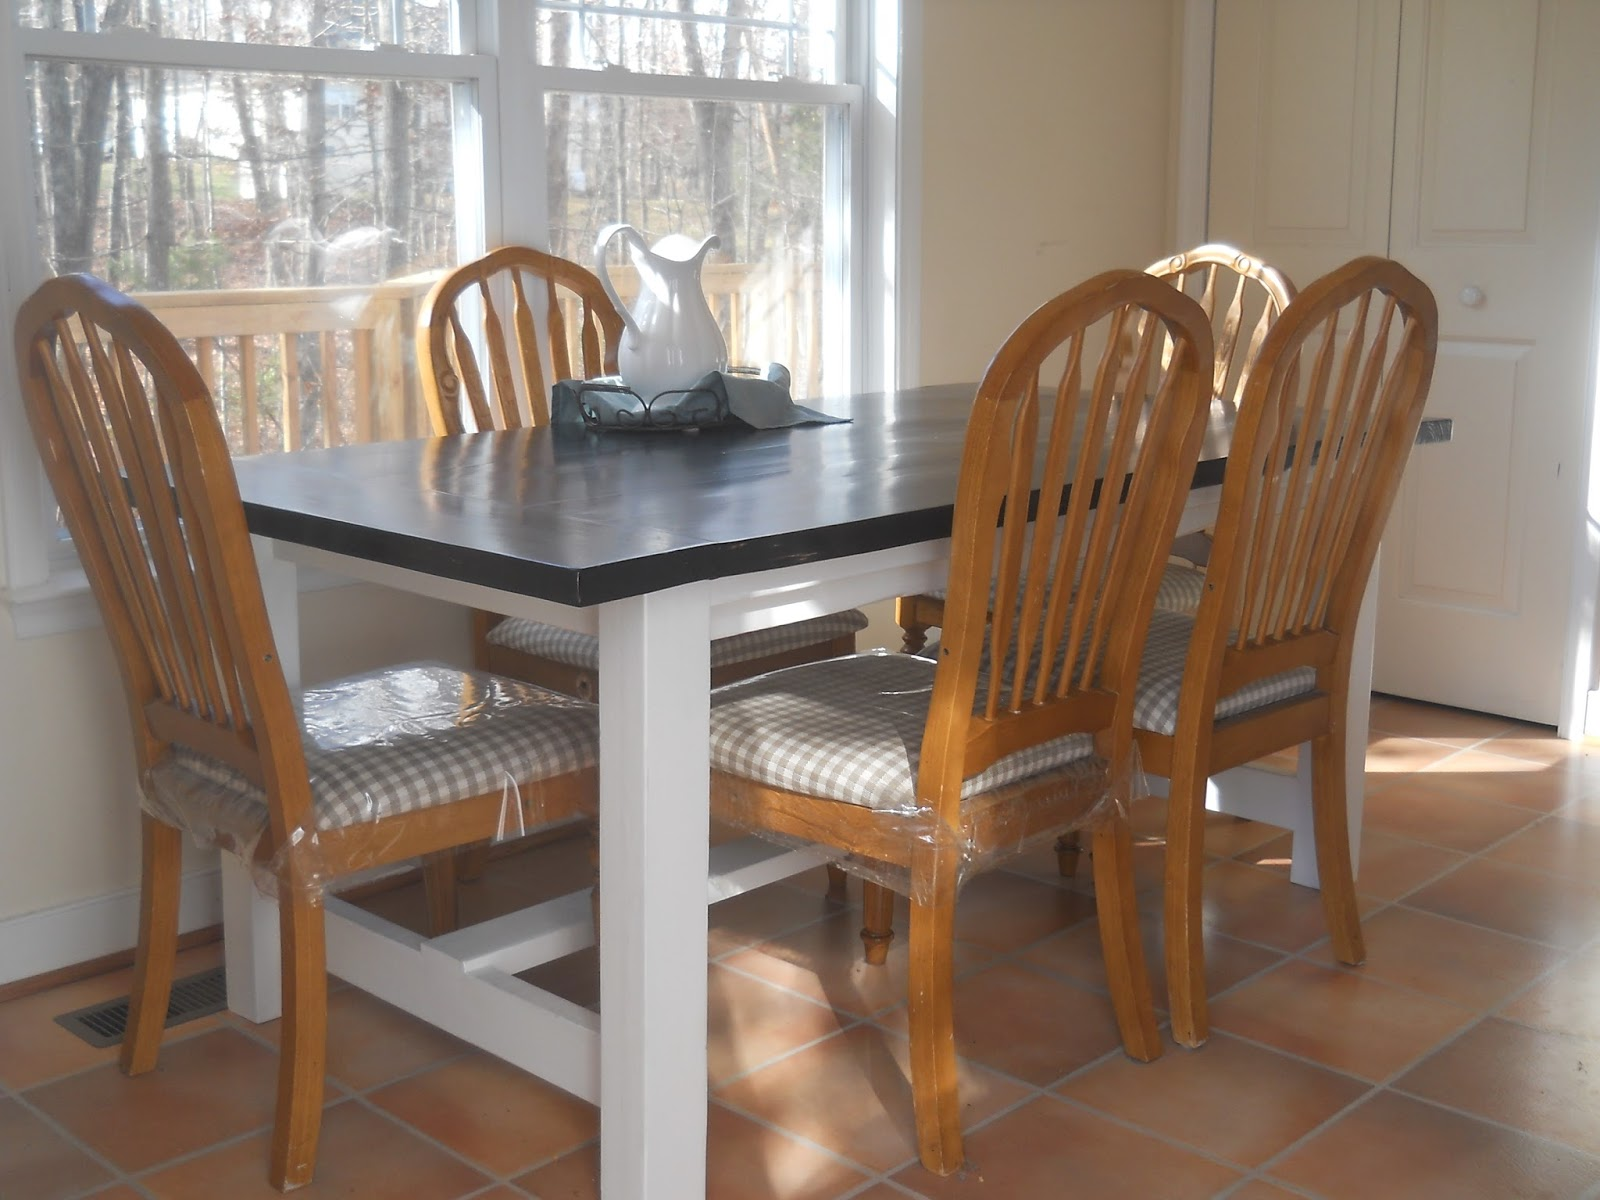 1001 Goals: Kitchen Table and Benches